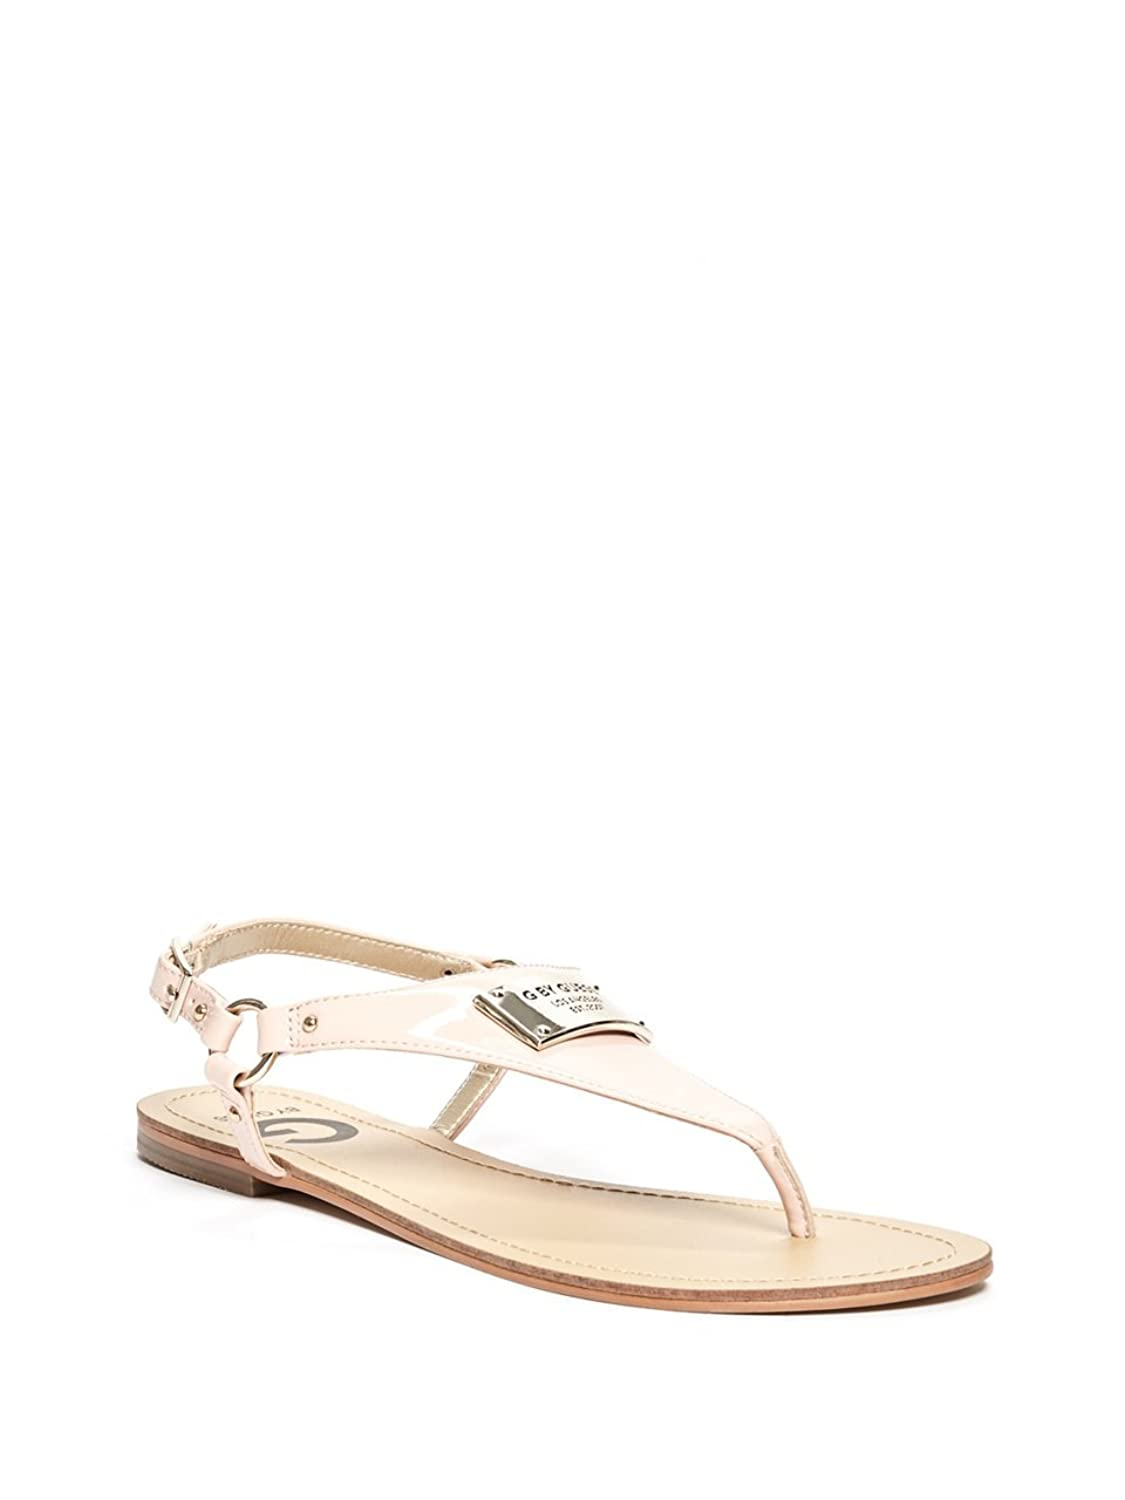 G by GUESS Women's Karmin Faux-Leather Sandals